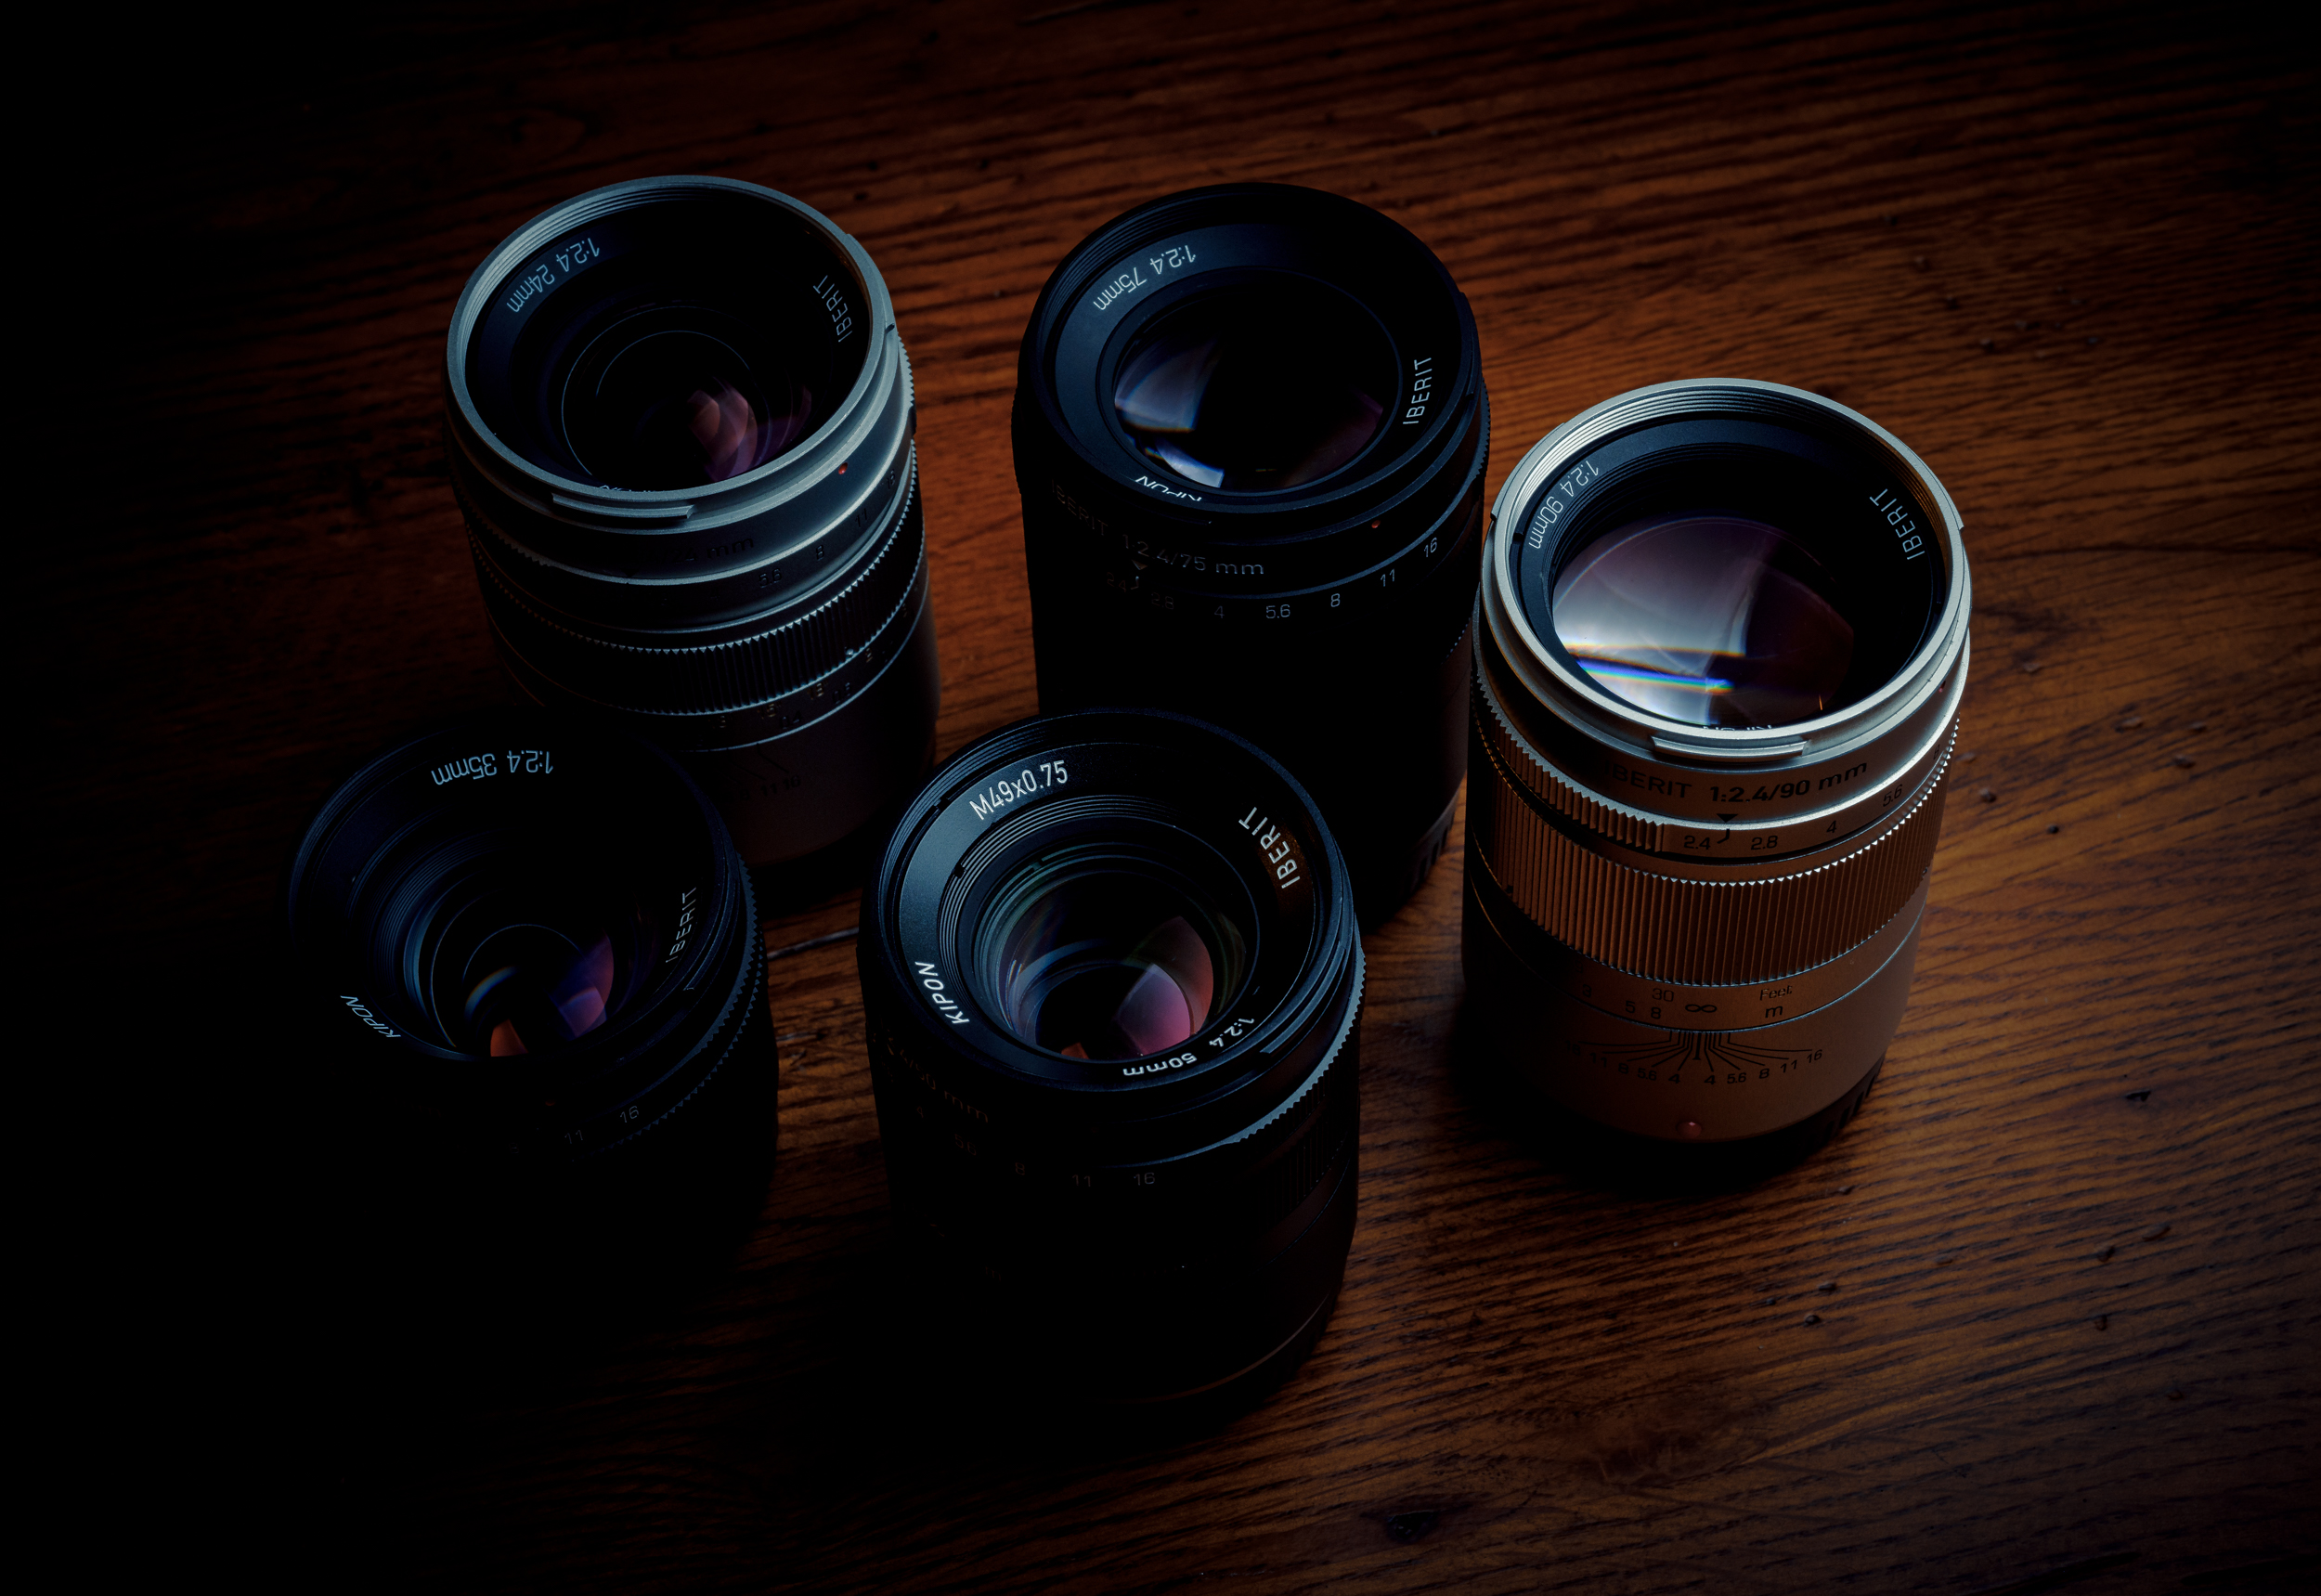 As you can see the sizing on all focal lengths are relatively similar with the exception of the 35mm.